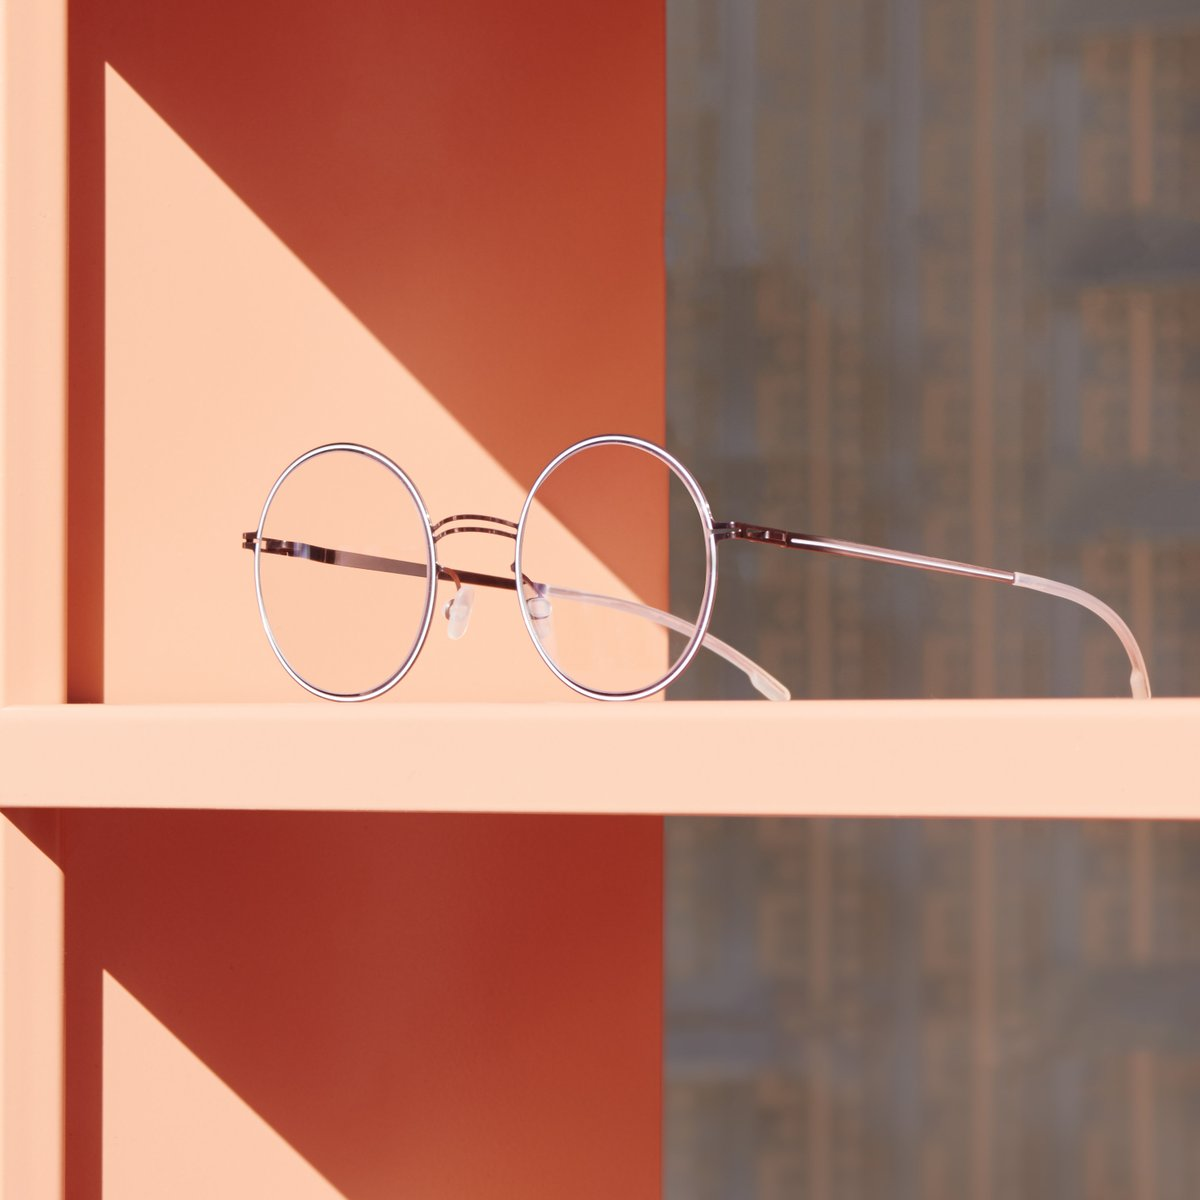 STUDIO 6.4 | MYKITA STUDIO Beauty in the detail – the finely etched contours and double bridge on optical model STUDIO 6.4 elevate this everyday piece to the extraordinary. https://t.co/Qm40YG9nJy #MYKITA #mykitastudio https://t.co/FiwcvdhJdO